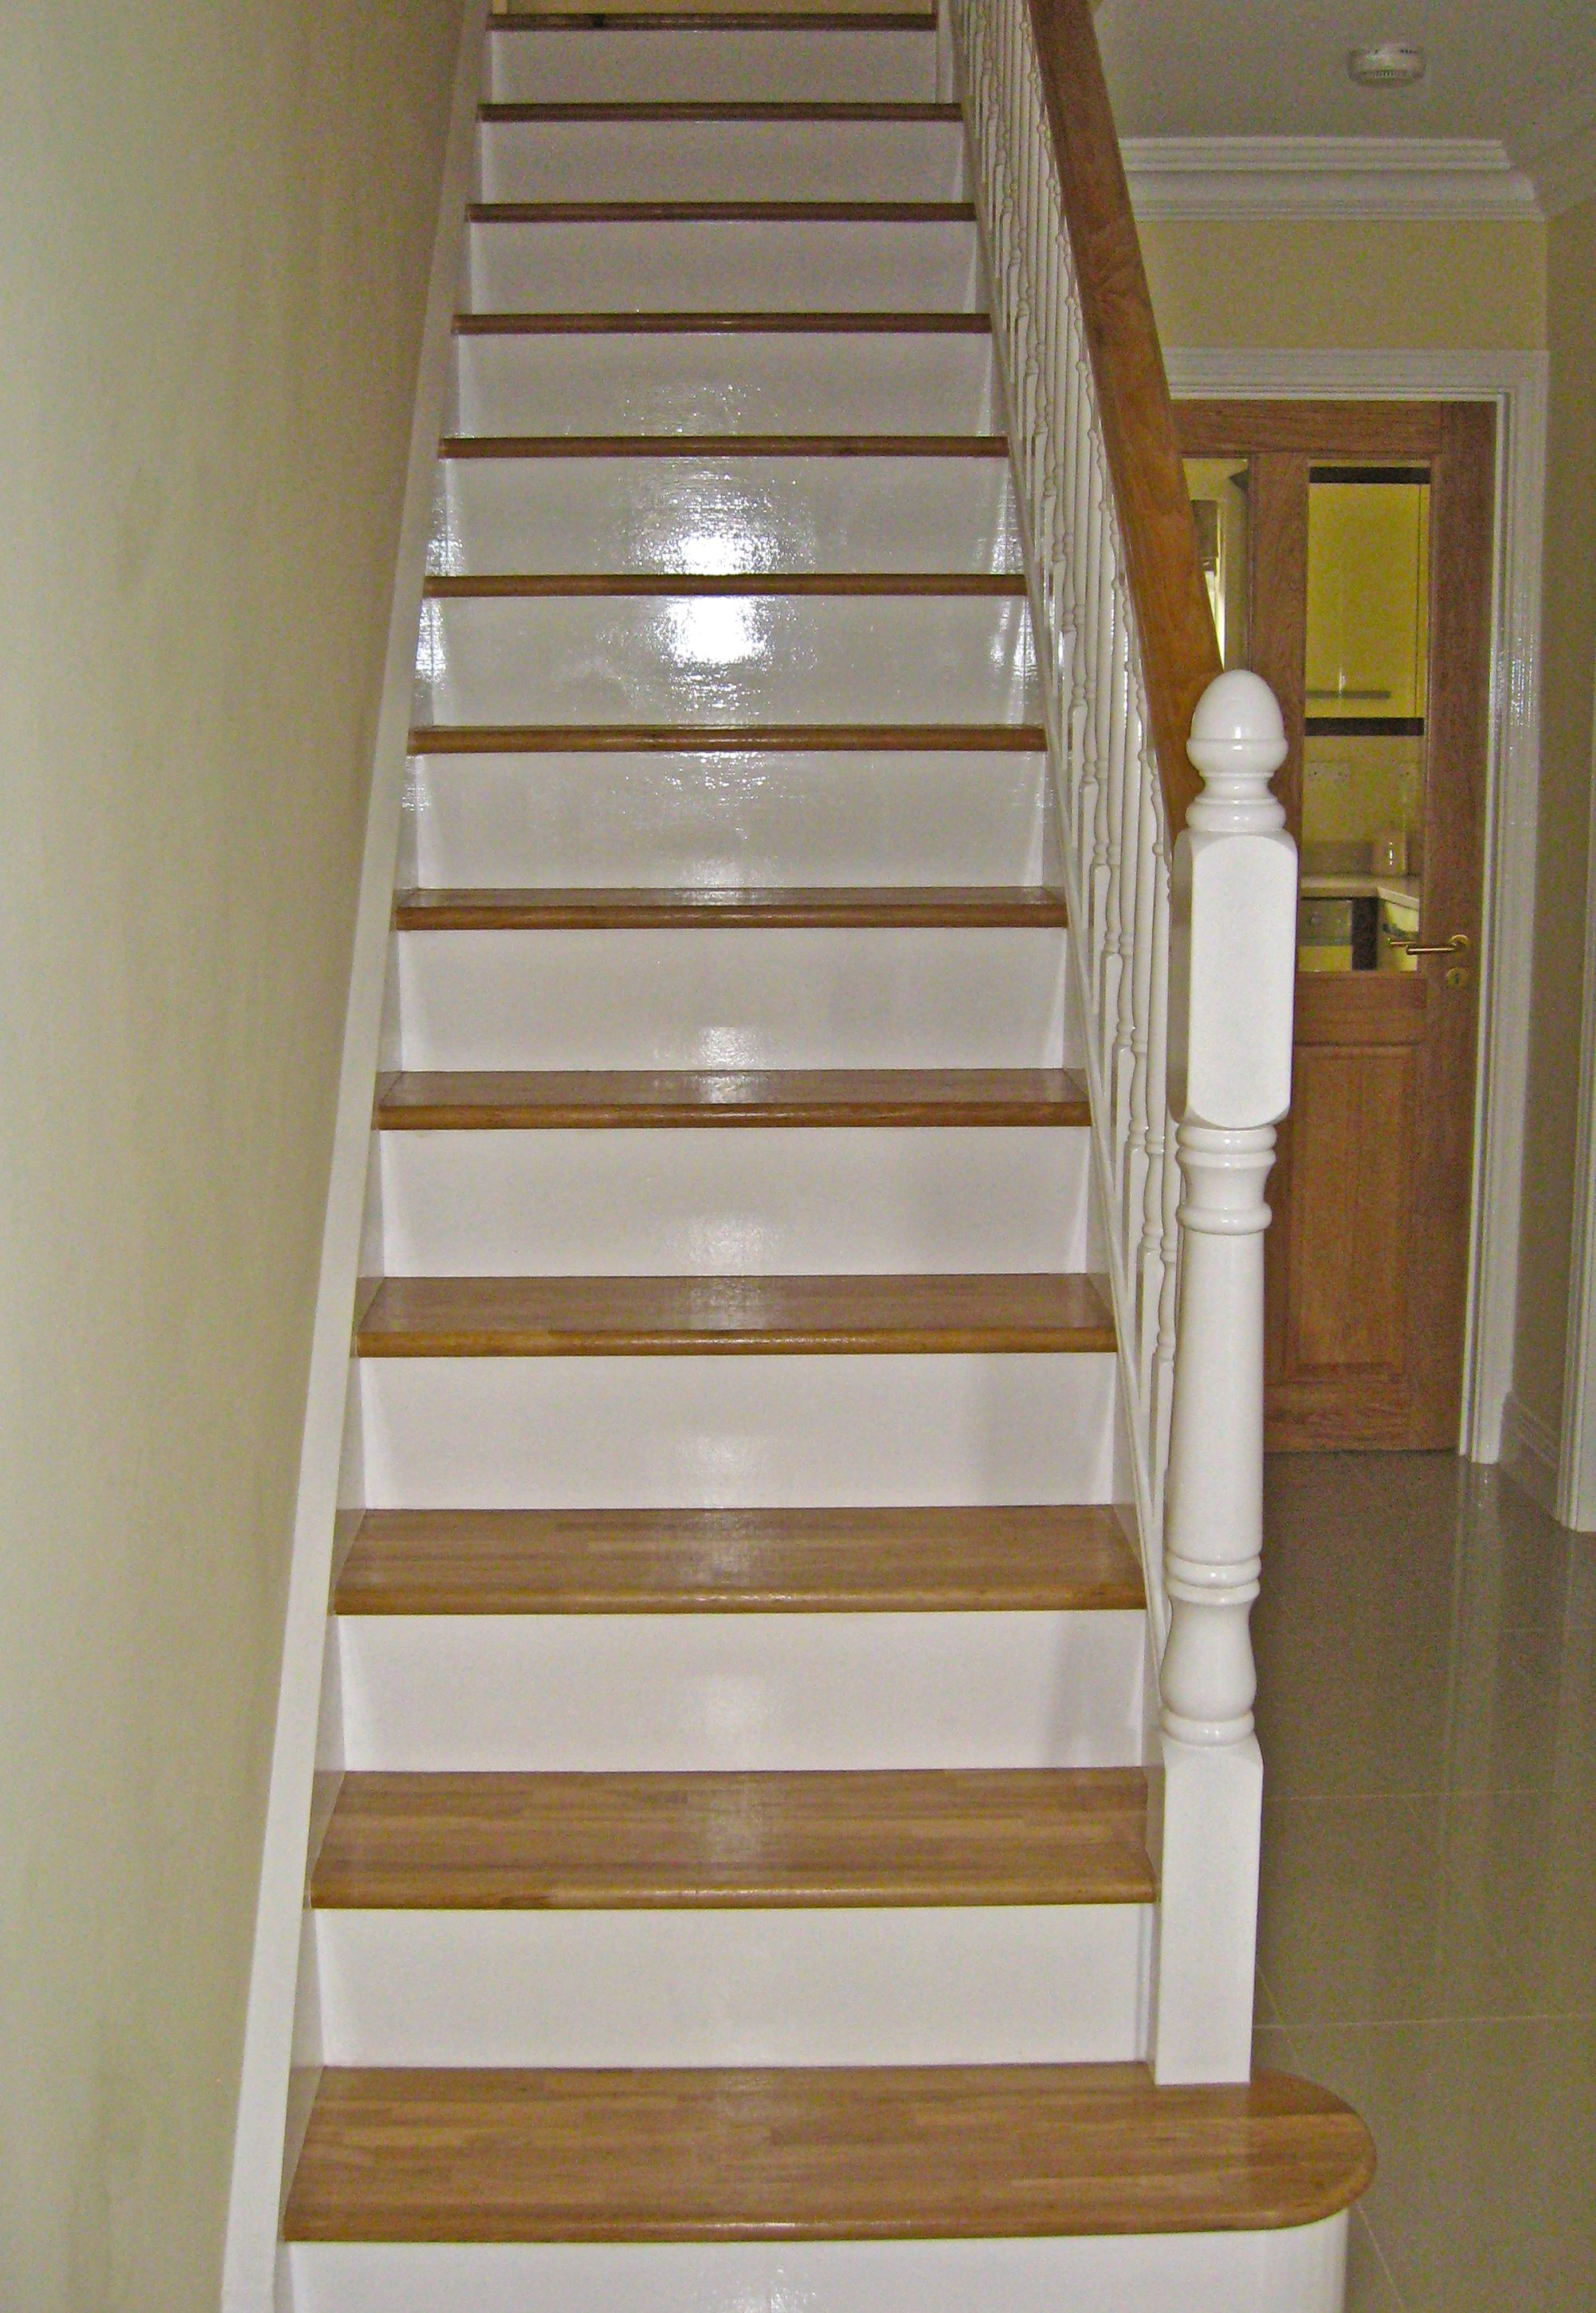 Best Oak Painted Stairs Western Joinery Co Ltd Joinery In 640 x 480